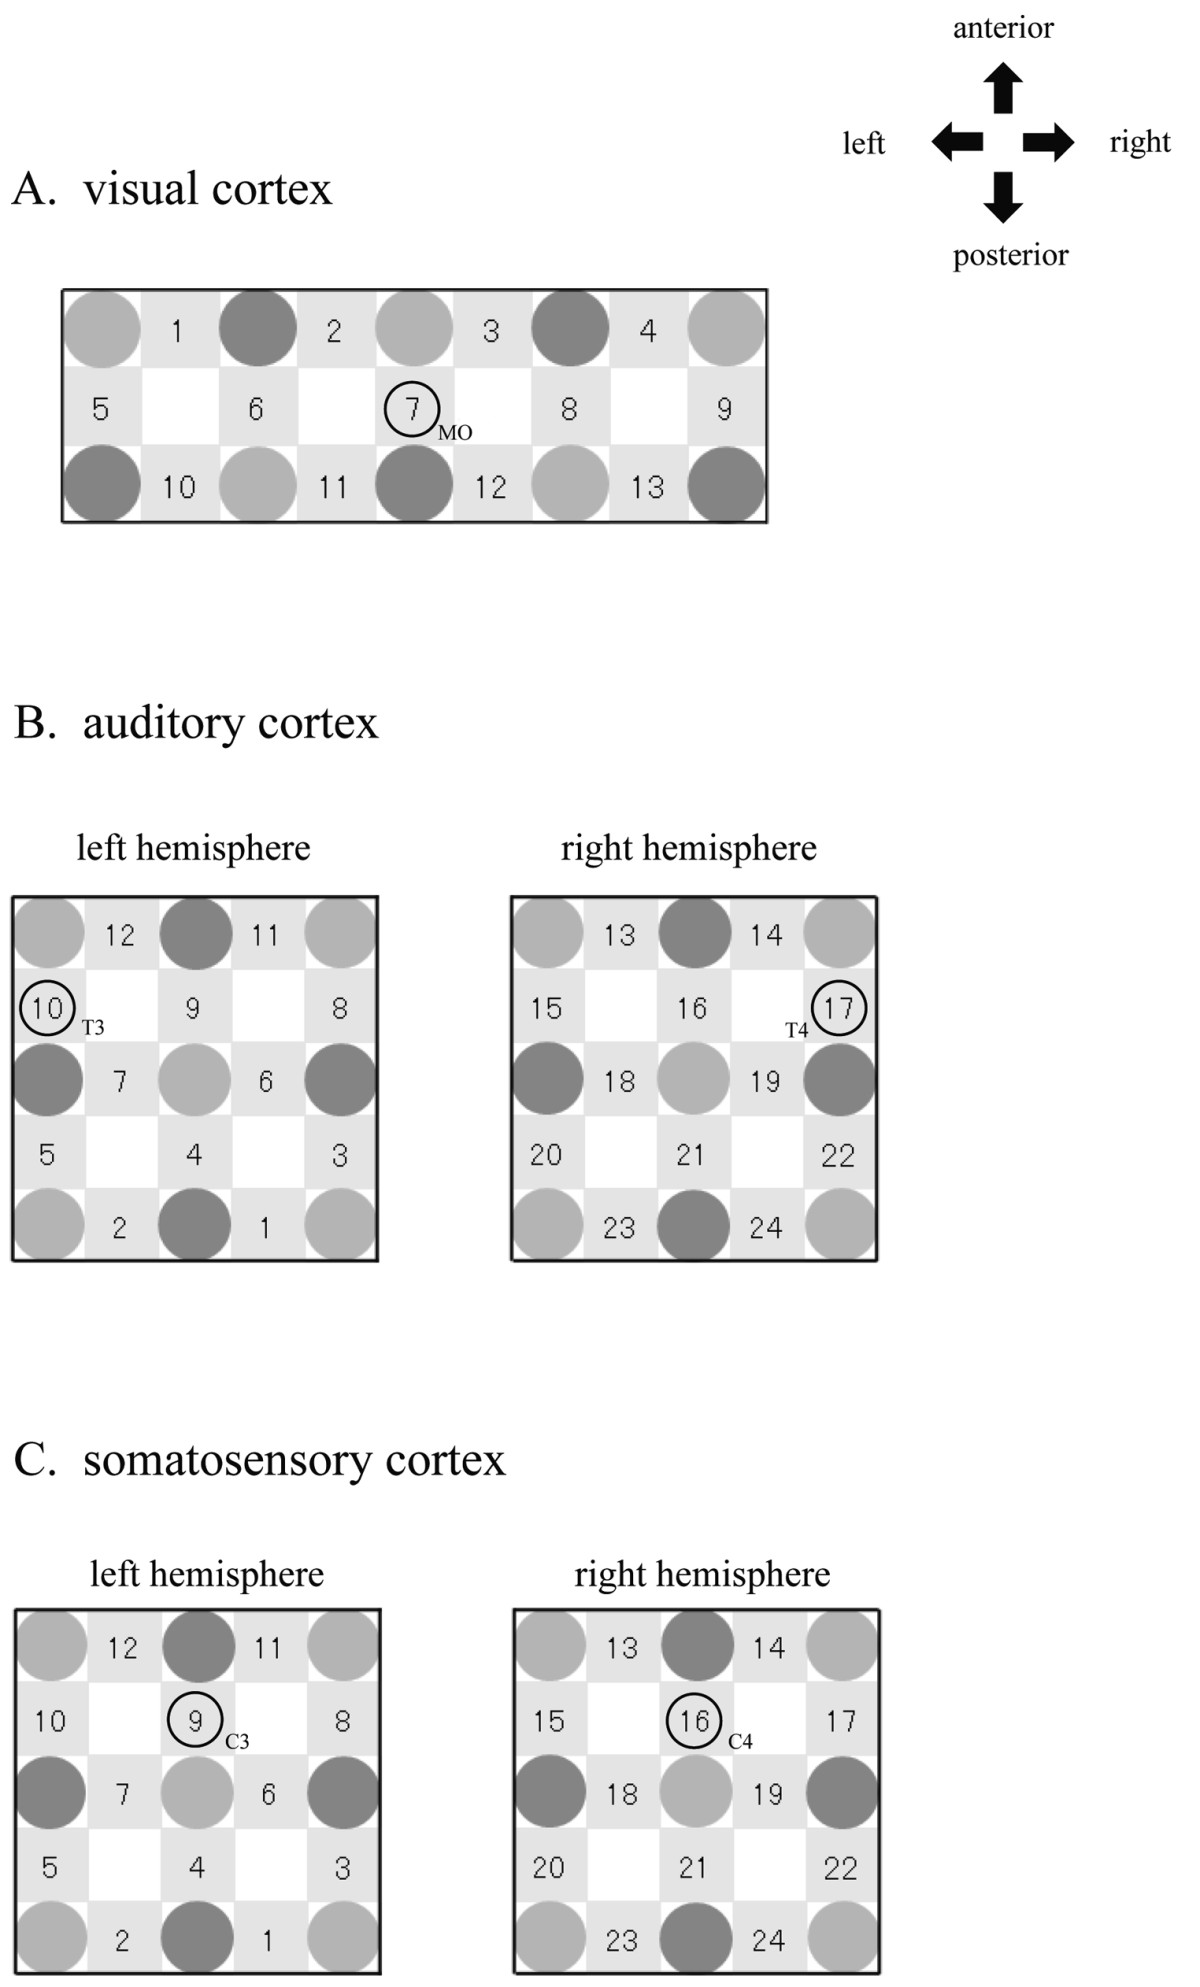 http://static-content.springer.com/image/art%3A10.1186%2F1880-6805-31-31/MediaObjects/40101_2012_Article_29_Fig2_HTML.jpg